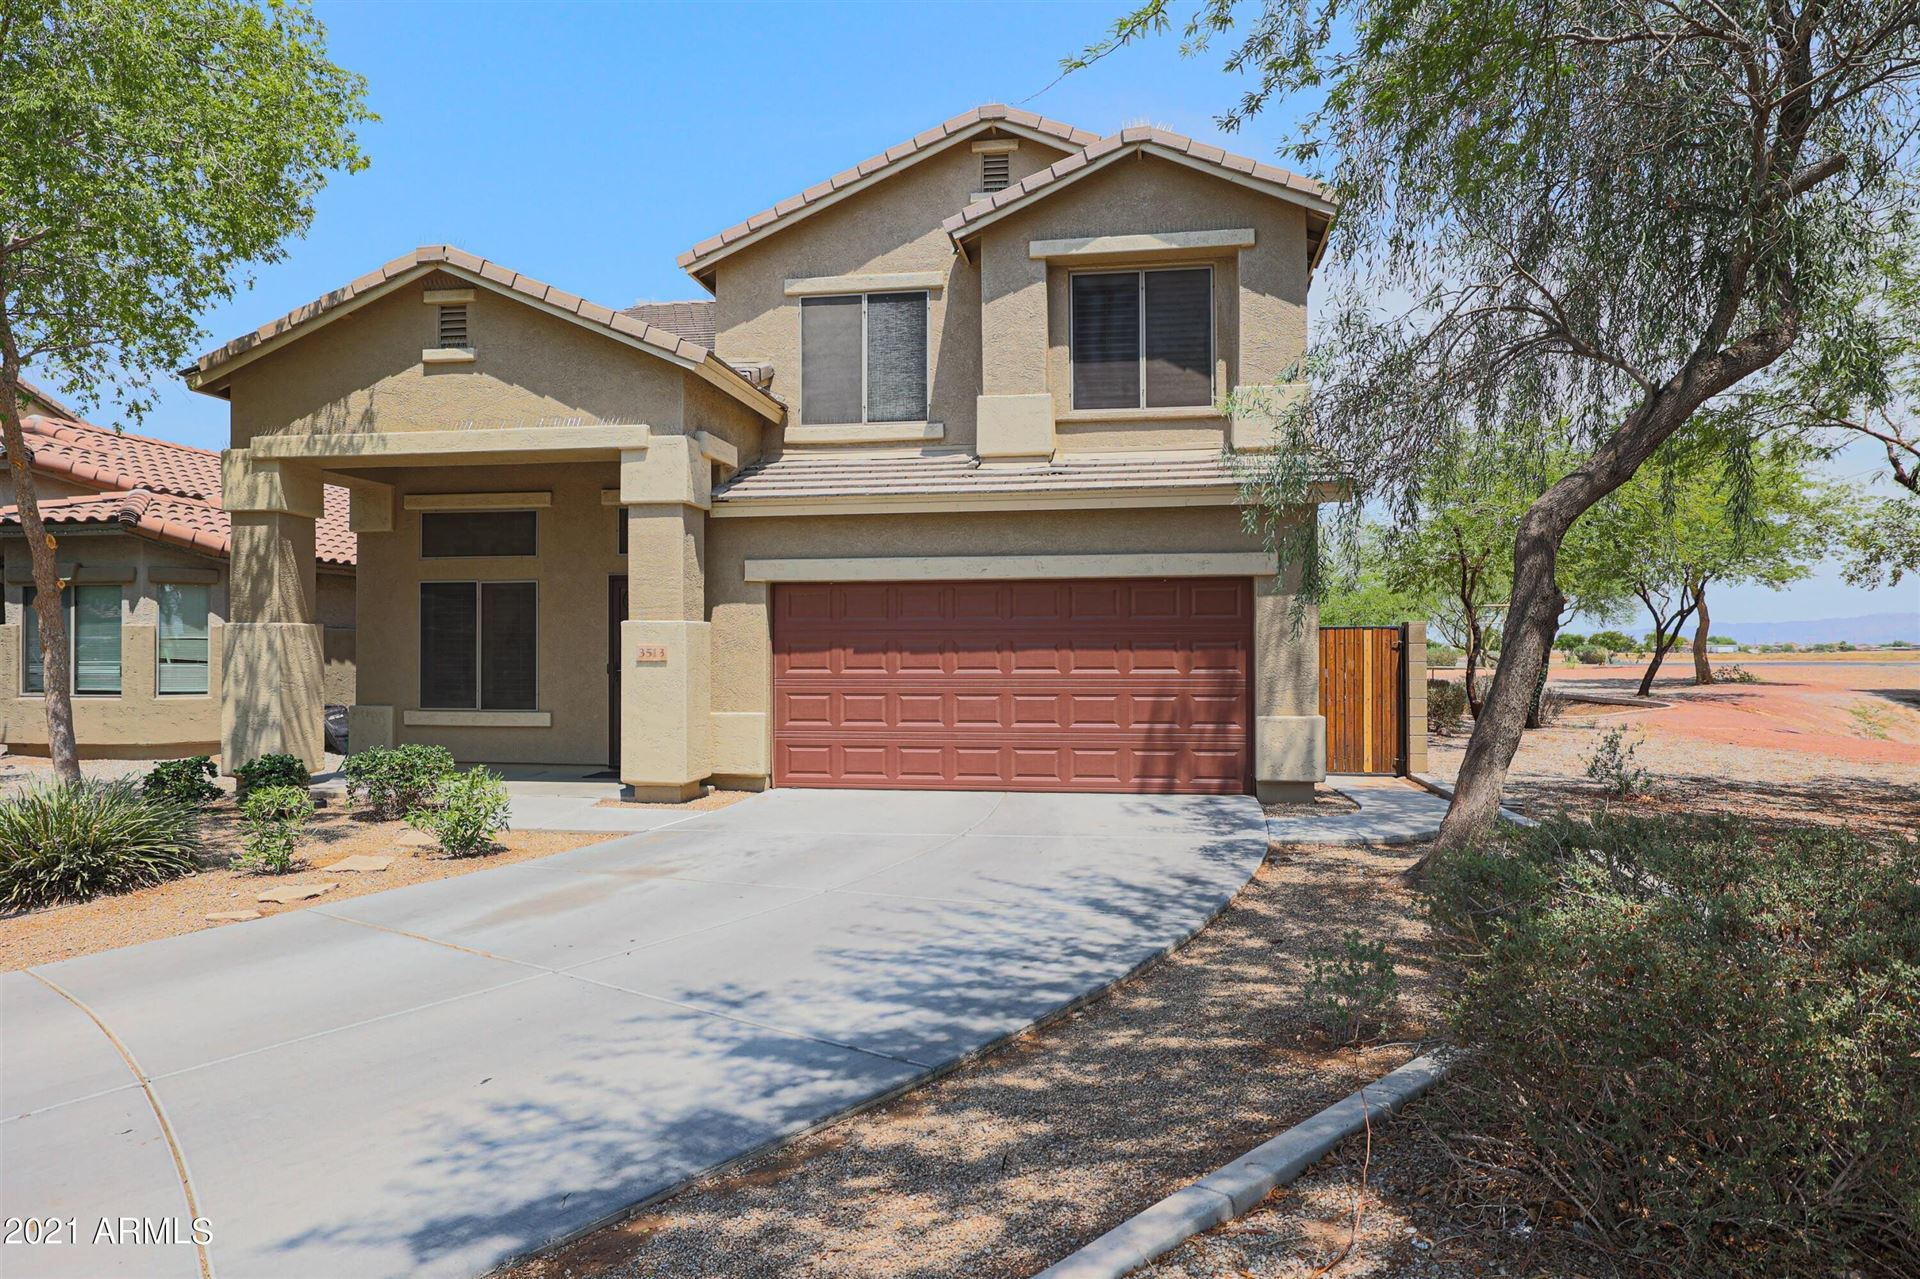 Photo of 3513 S 87th Drive, Tolleson, AZ 85353 (MLS # 6264498)